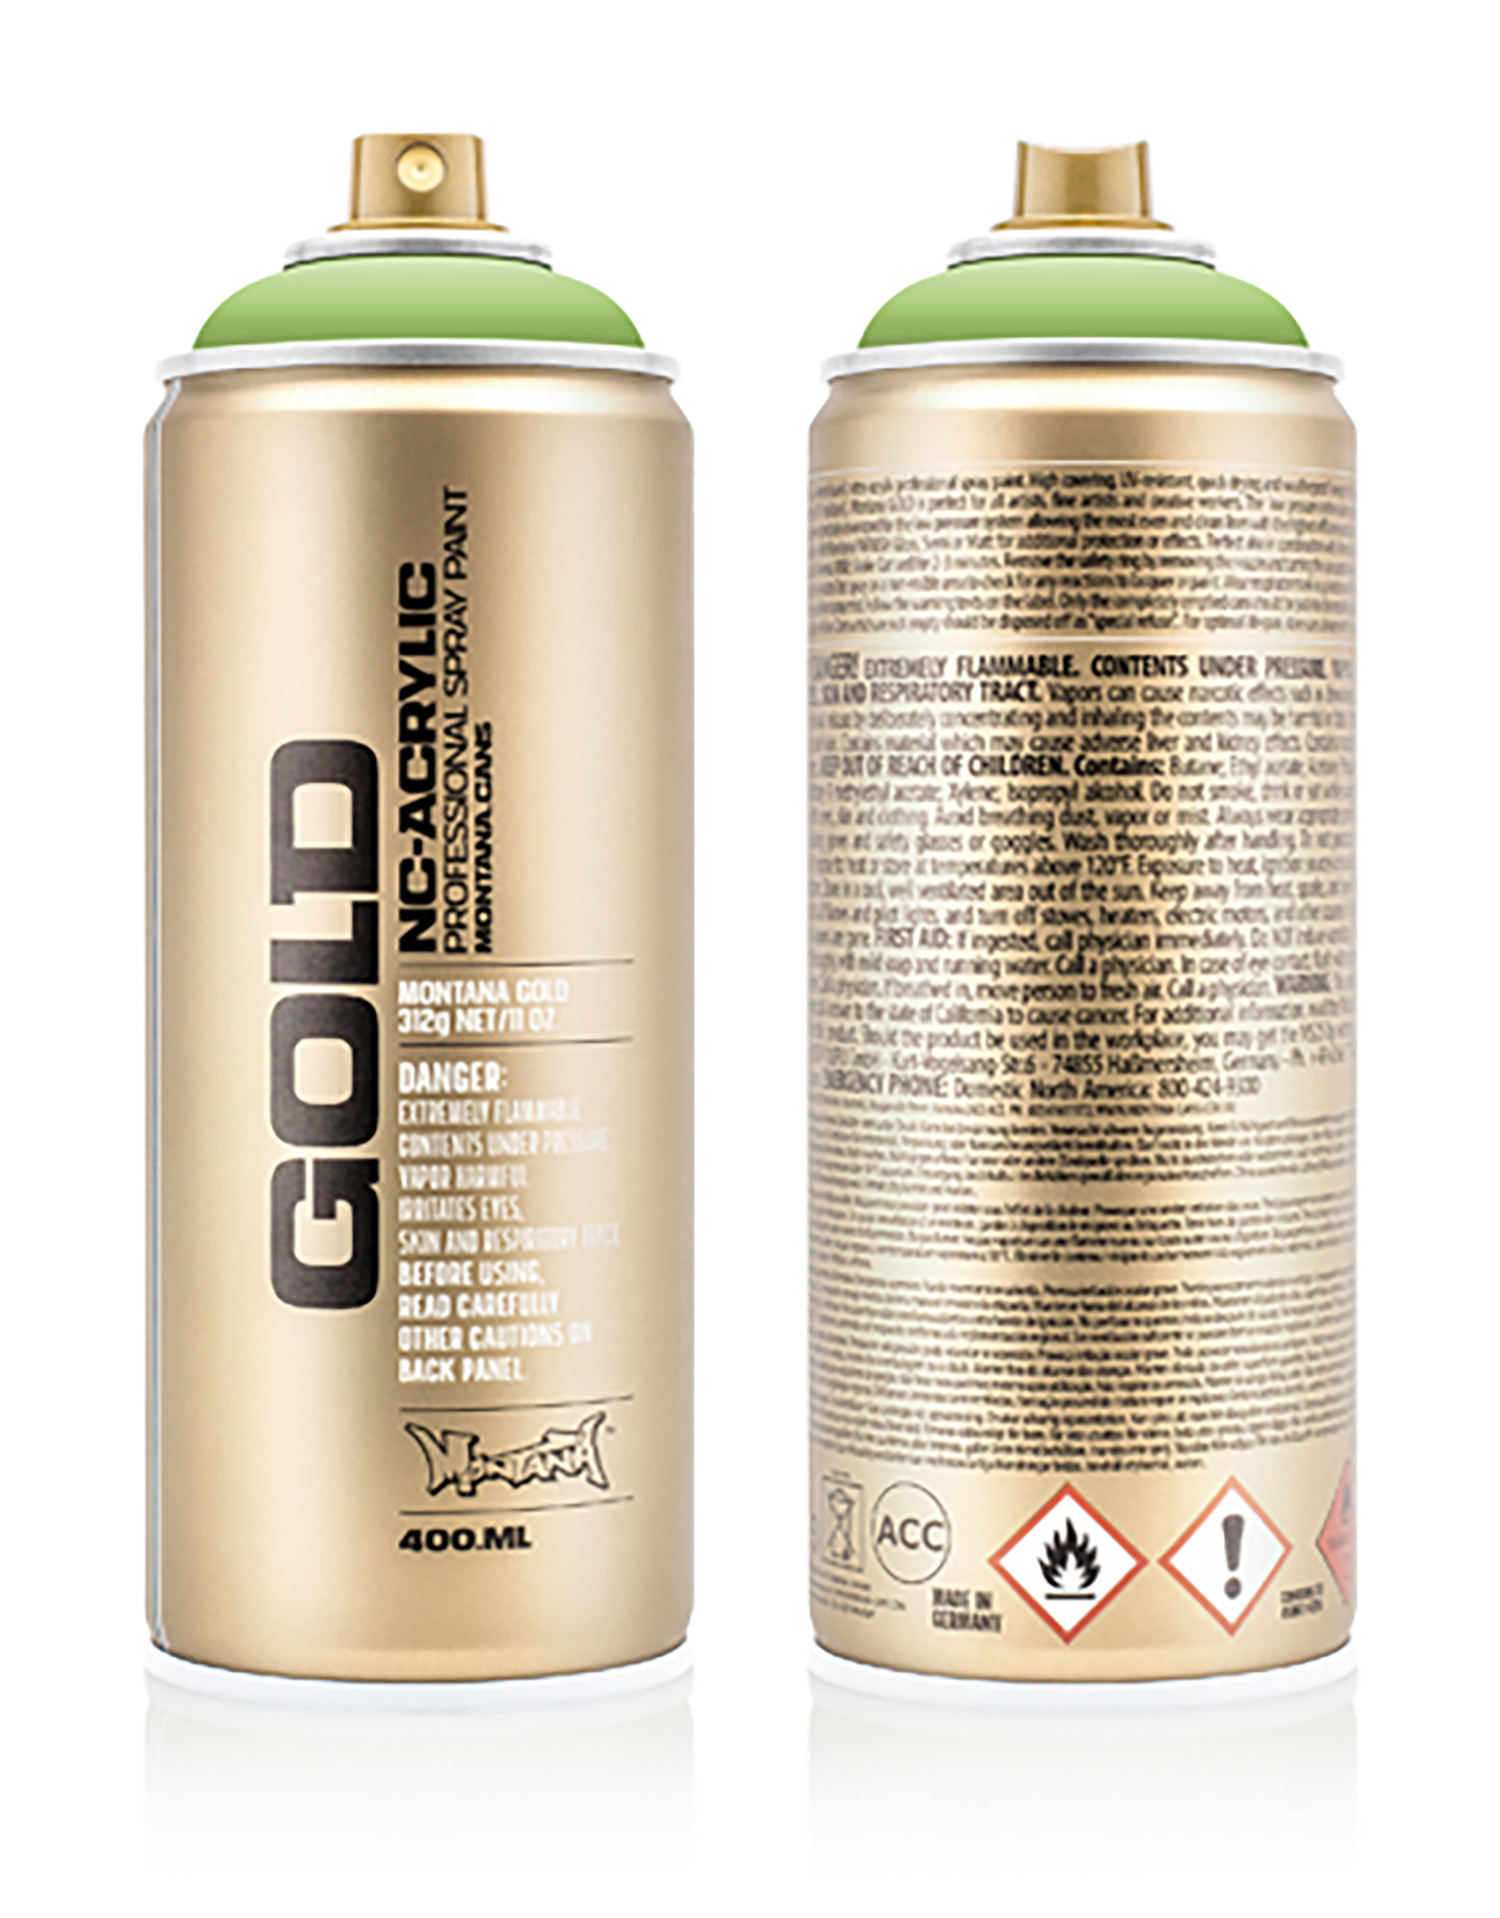 MONTANA-GOLD-SPRAY-400ML-G-6020